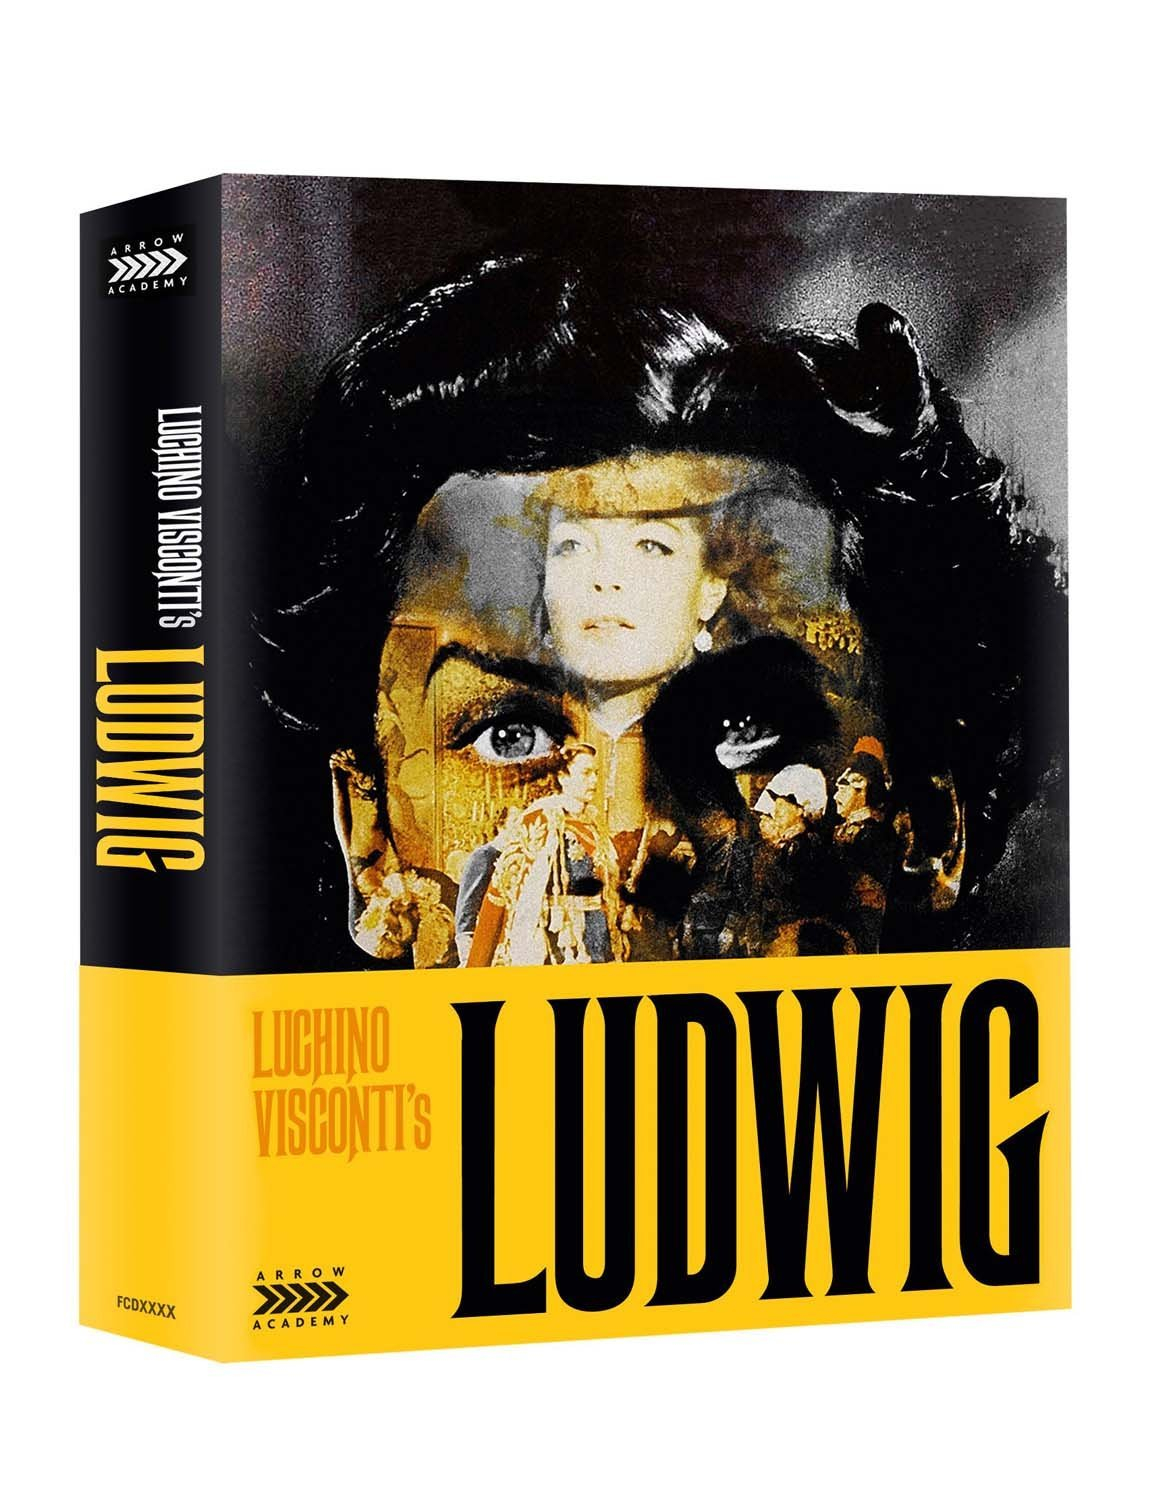 Buy Ludwig (Limited Edition)